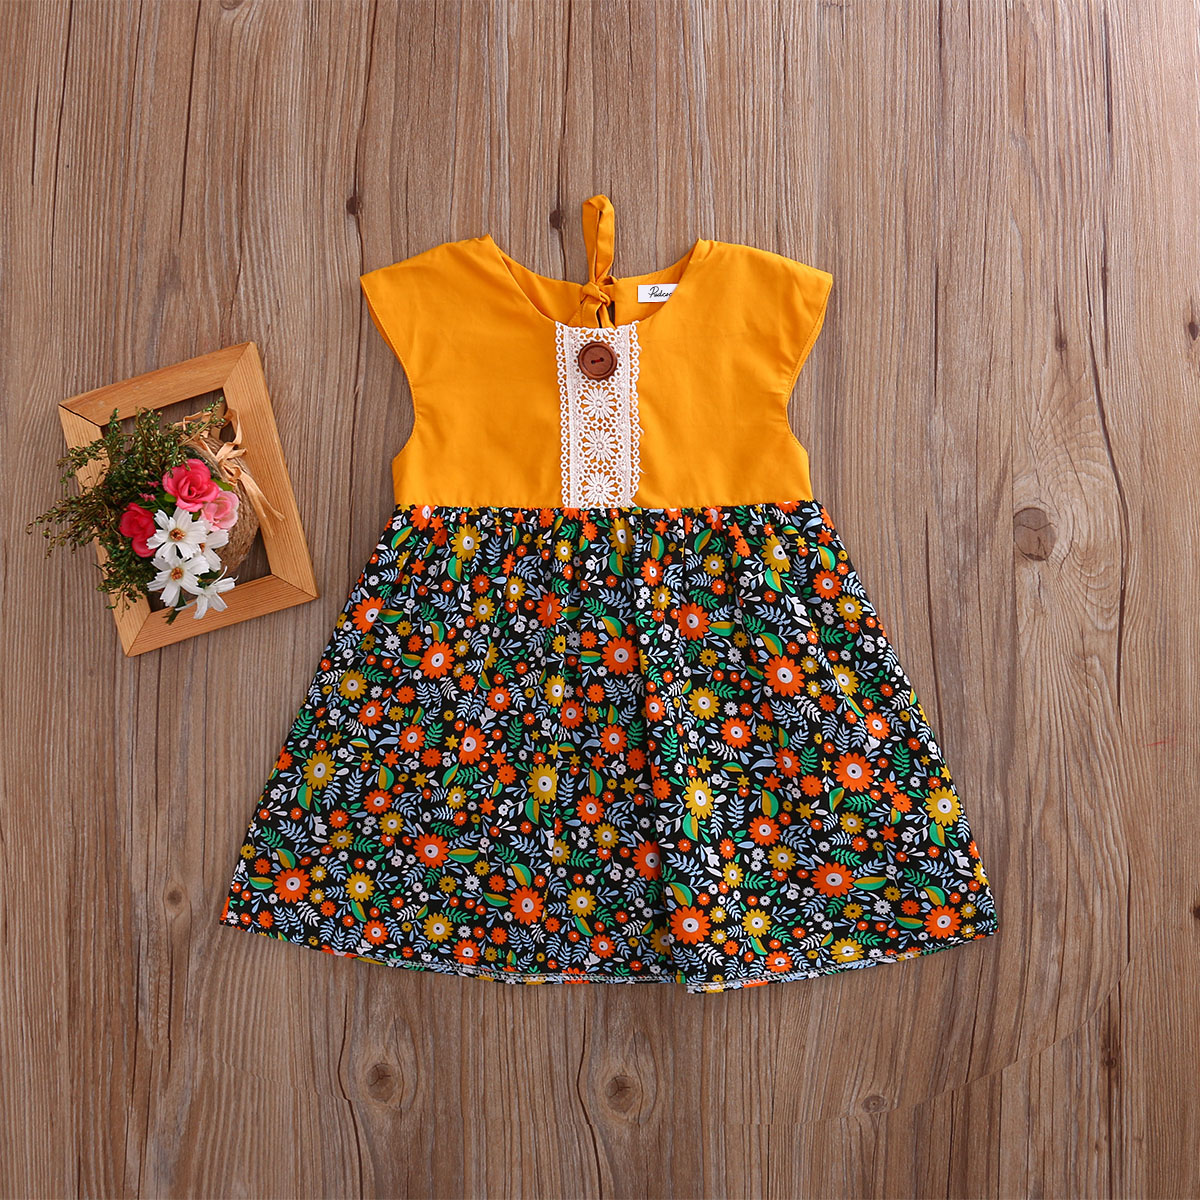 Bohemian-Floral-Toddler-Baby-Kids-Girls-Summer-Lace-Flower-Sundress-Party-Dress-Clothes-0-4T-1